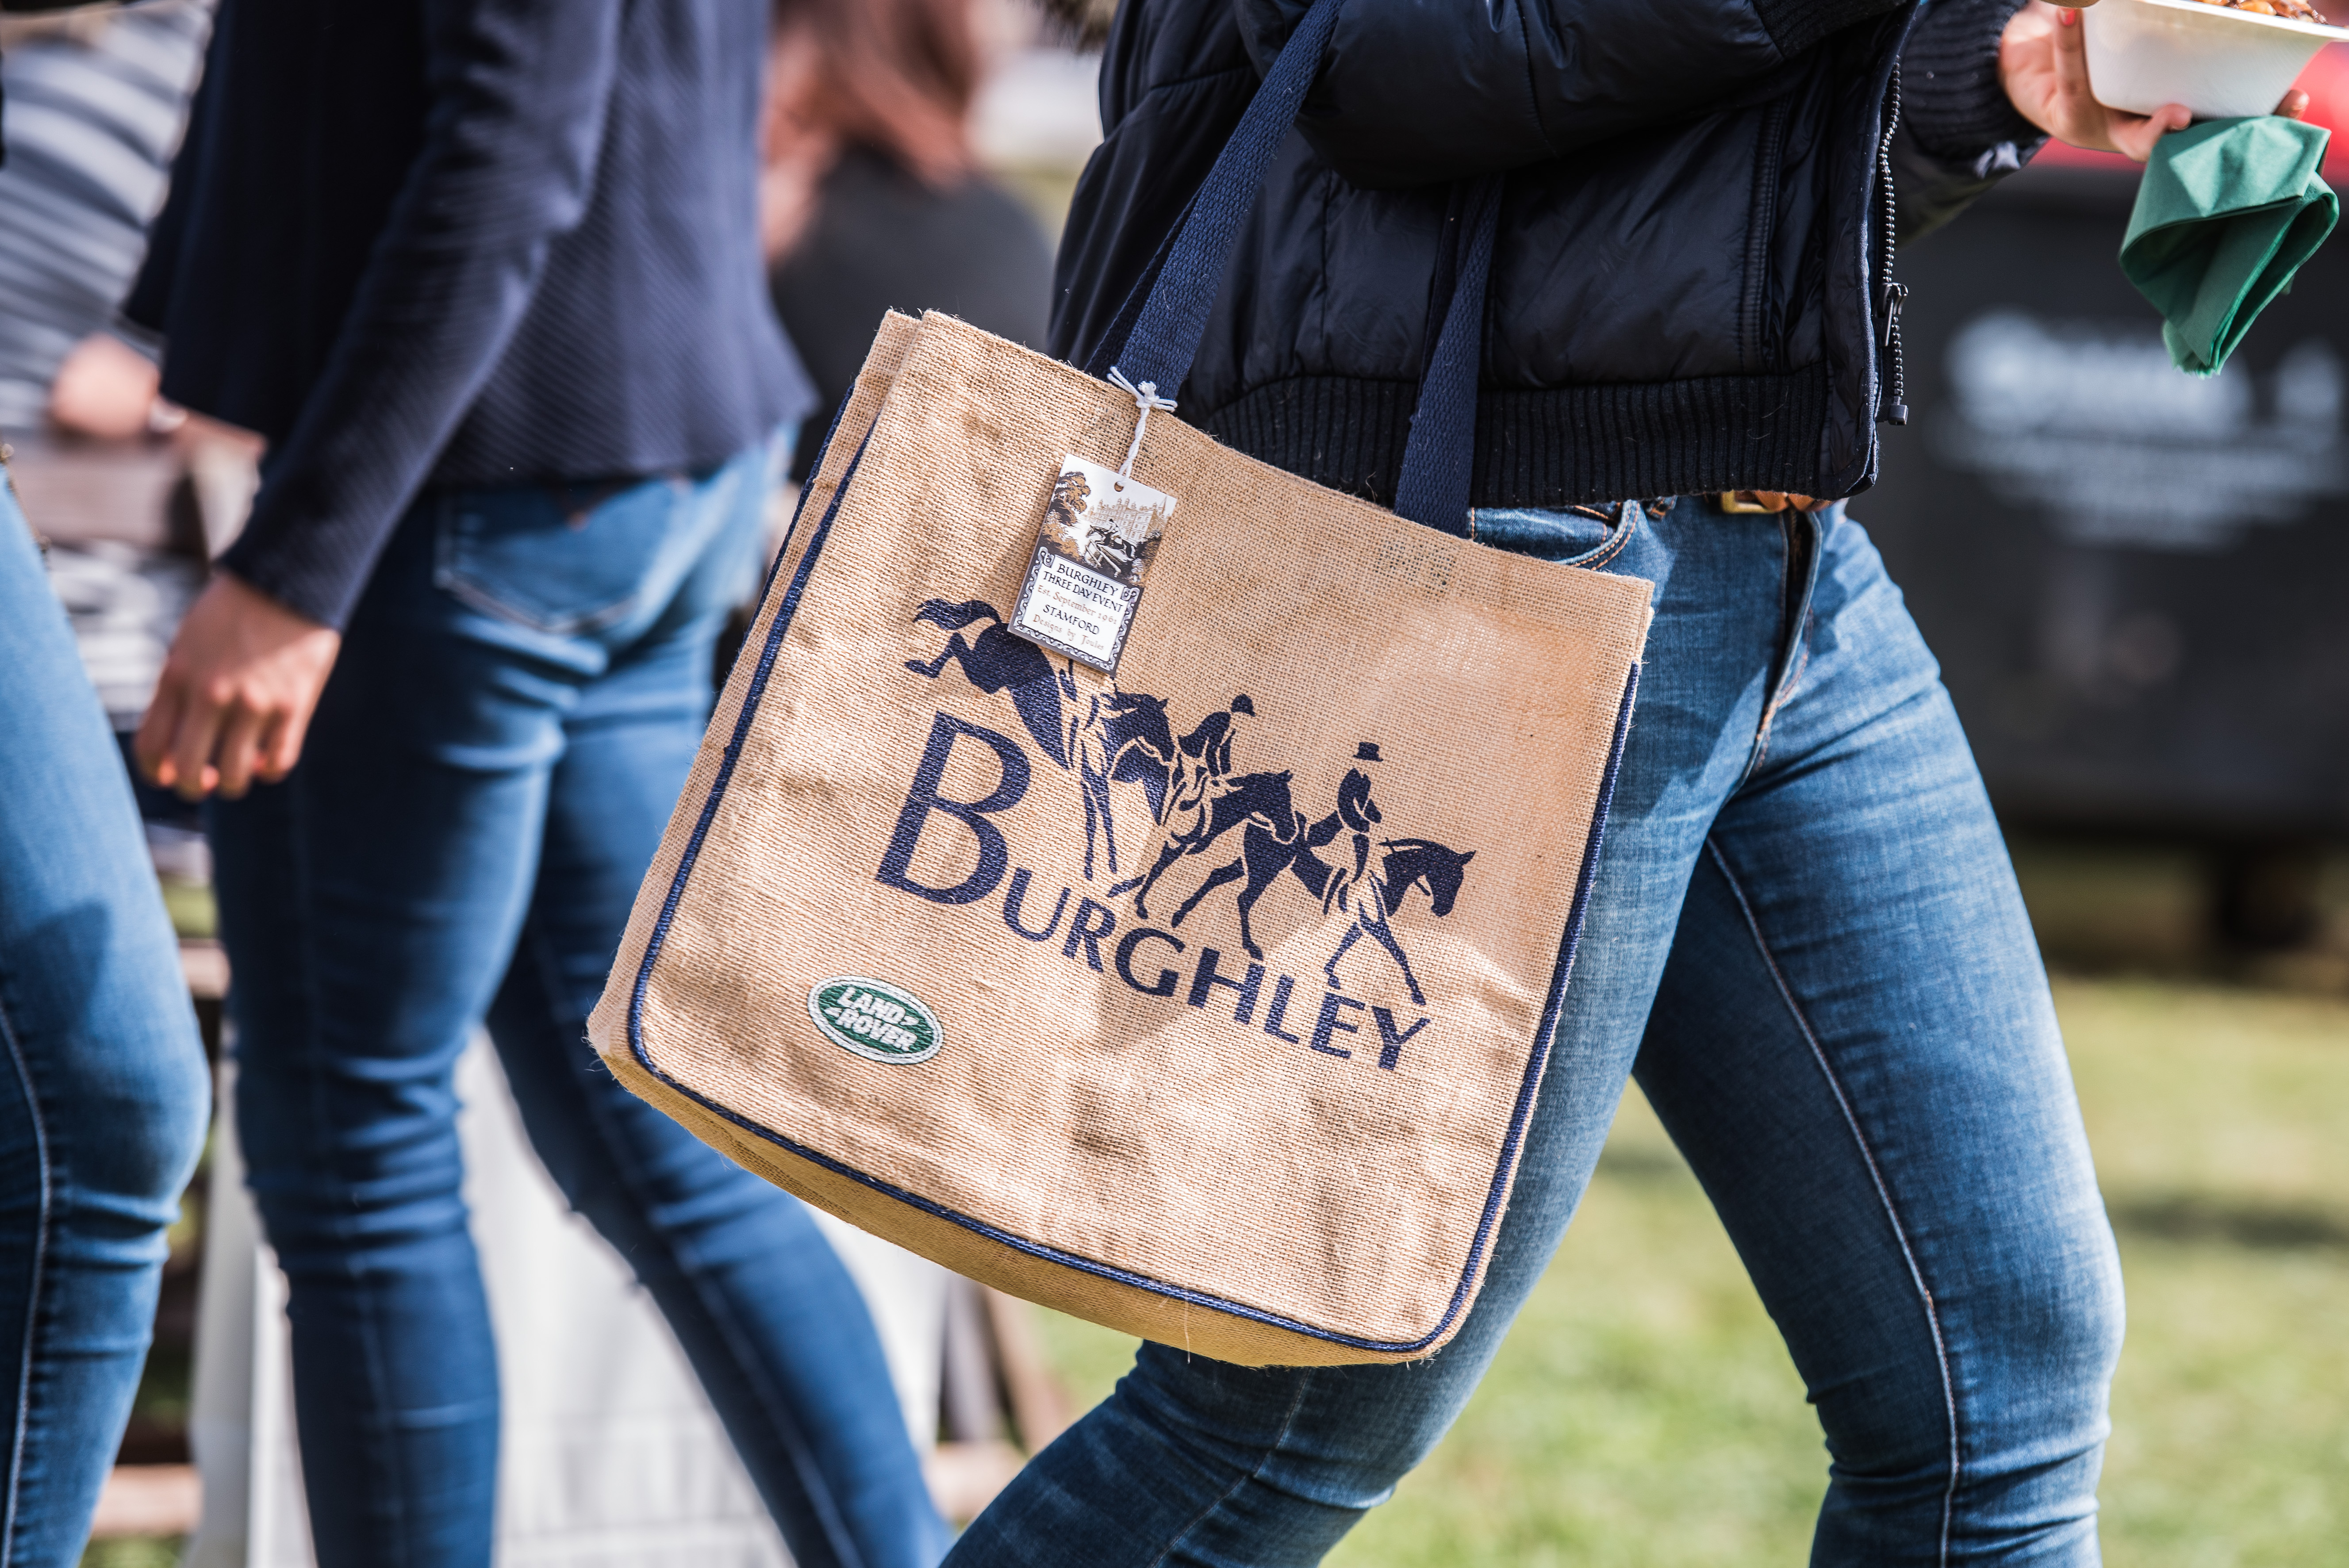 Style Spotting at Burghley Horse Trials I via Country Lifestyle Blogger sophiecallahanblog.com I #countryblogger #photography #equineblogger